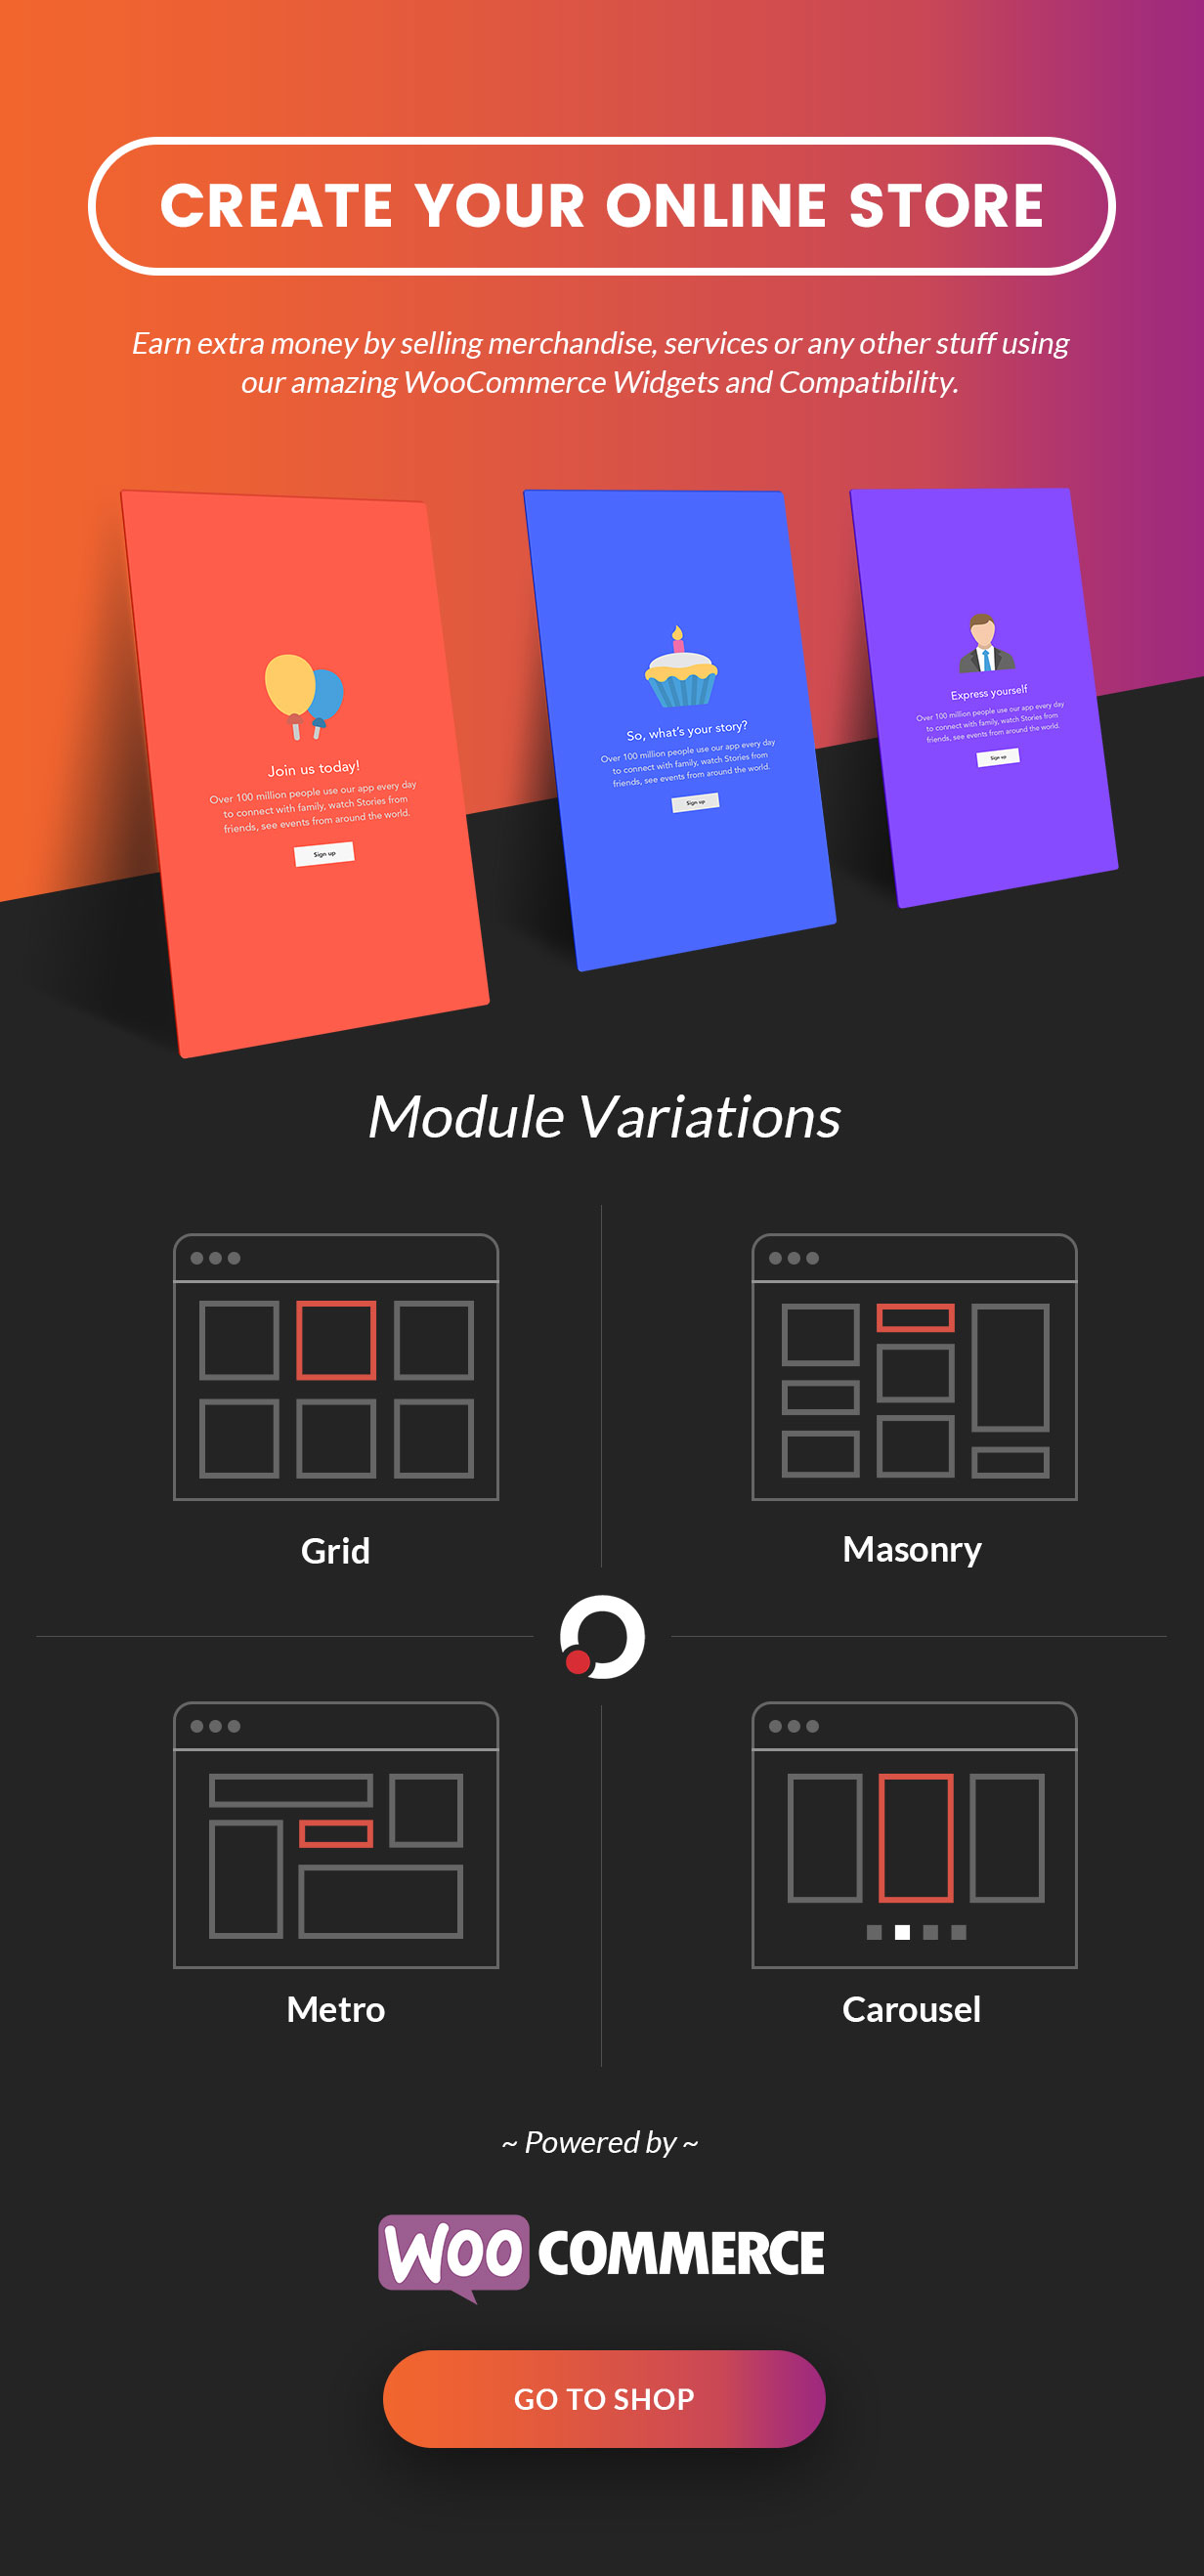 The Outset - SaaS, App, Product & Tech Software Startup Theme - 8